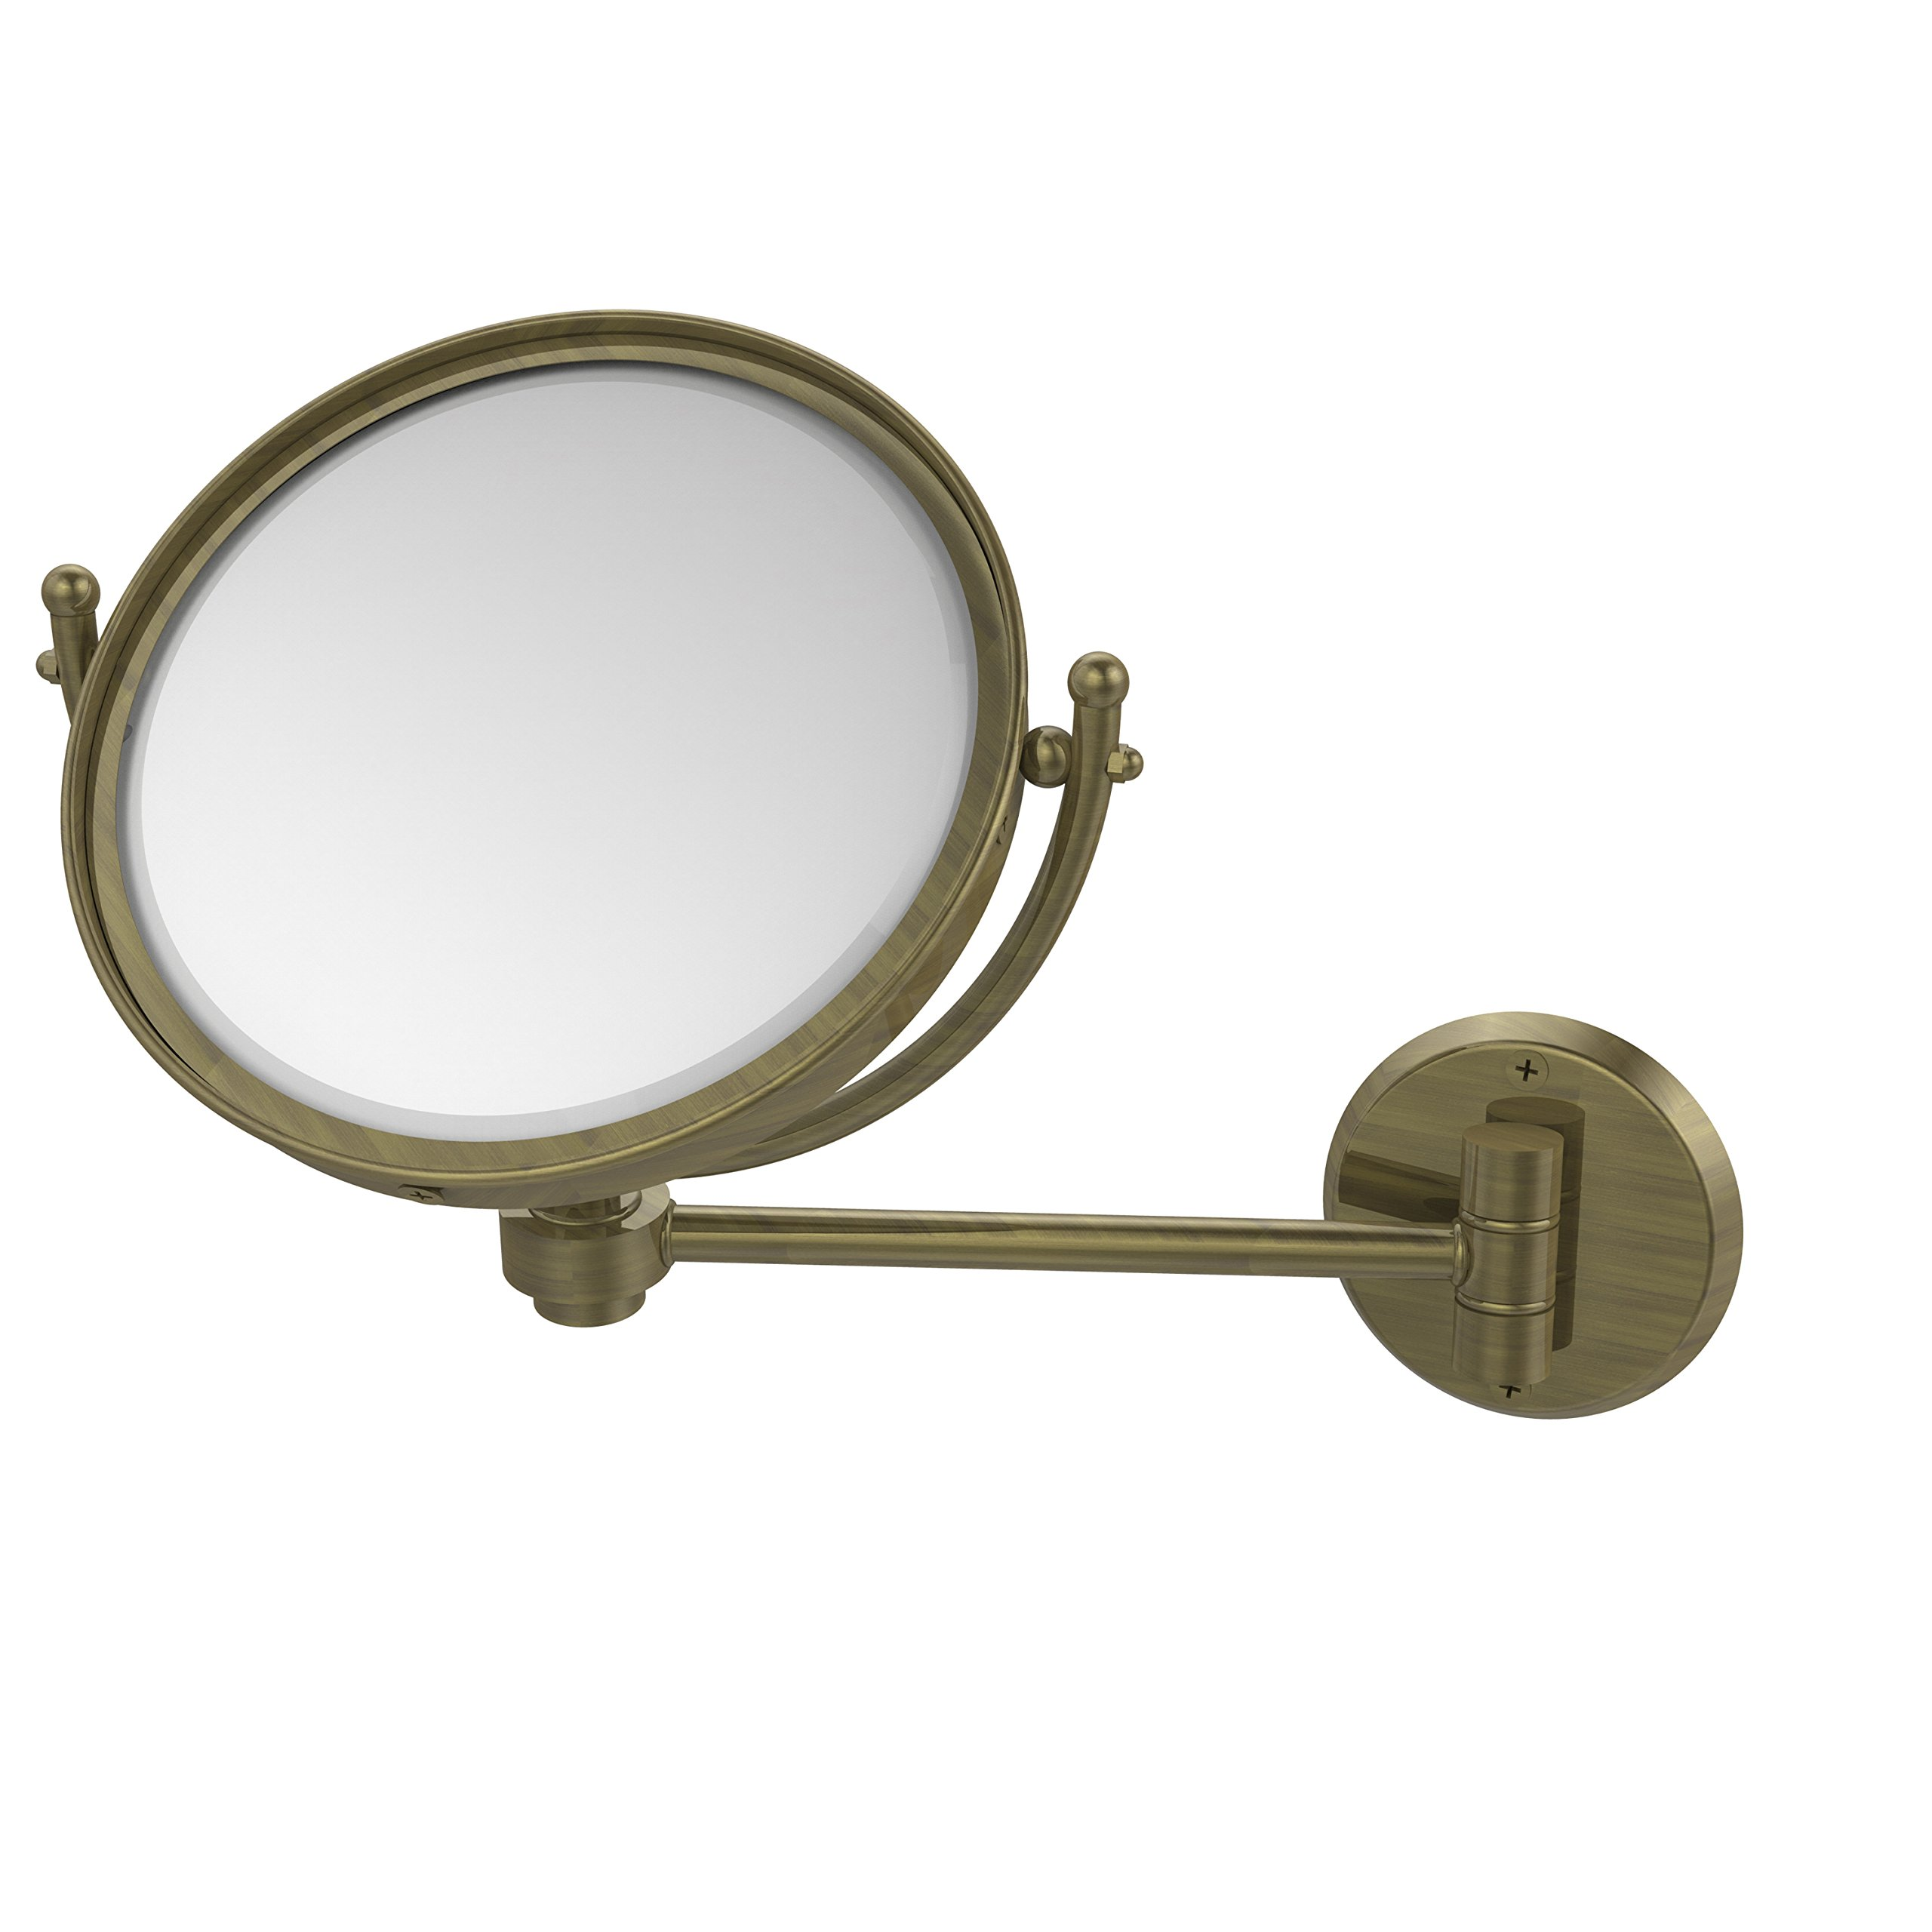 Allied Brass WM-5/5X-ABR 8-Inch Mirror with 5x Magnification Extends 7-Inch, Antique Brass